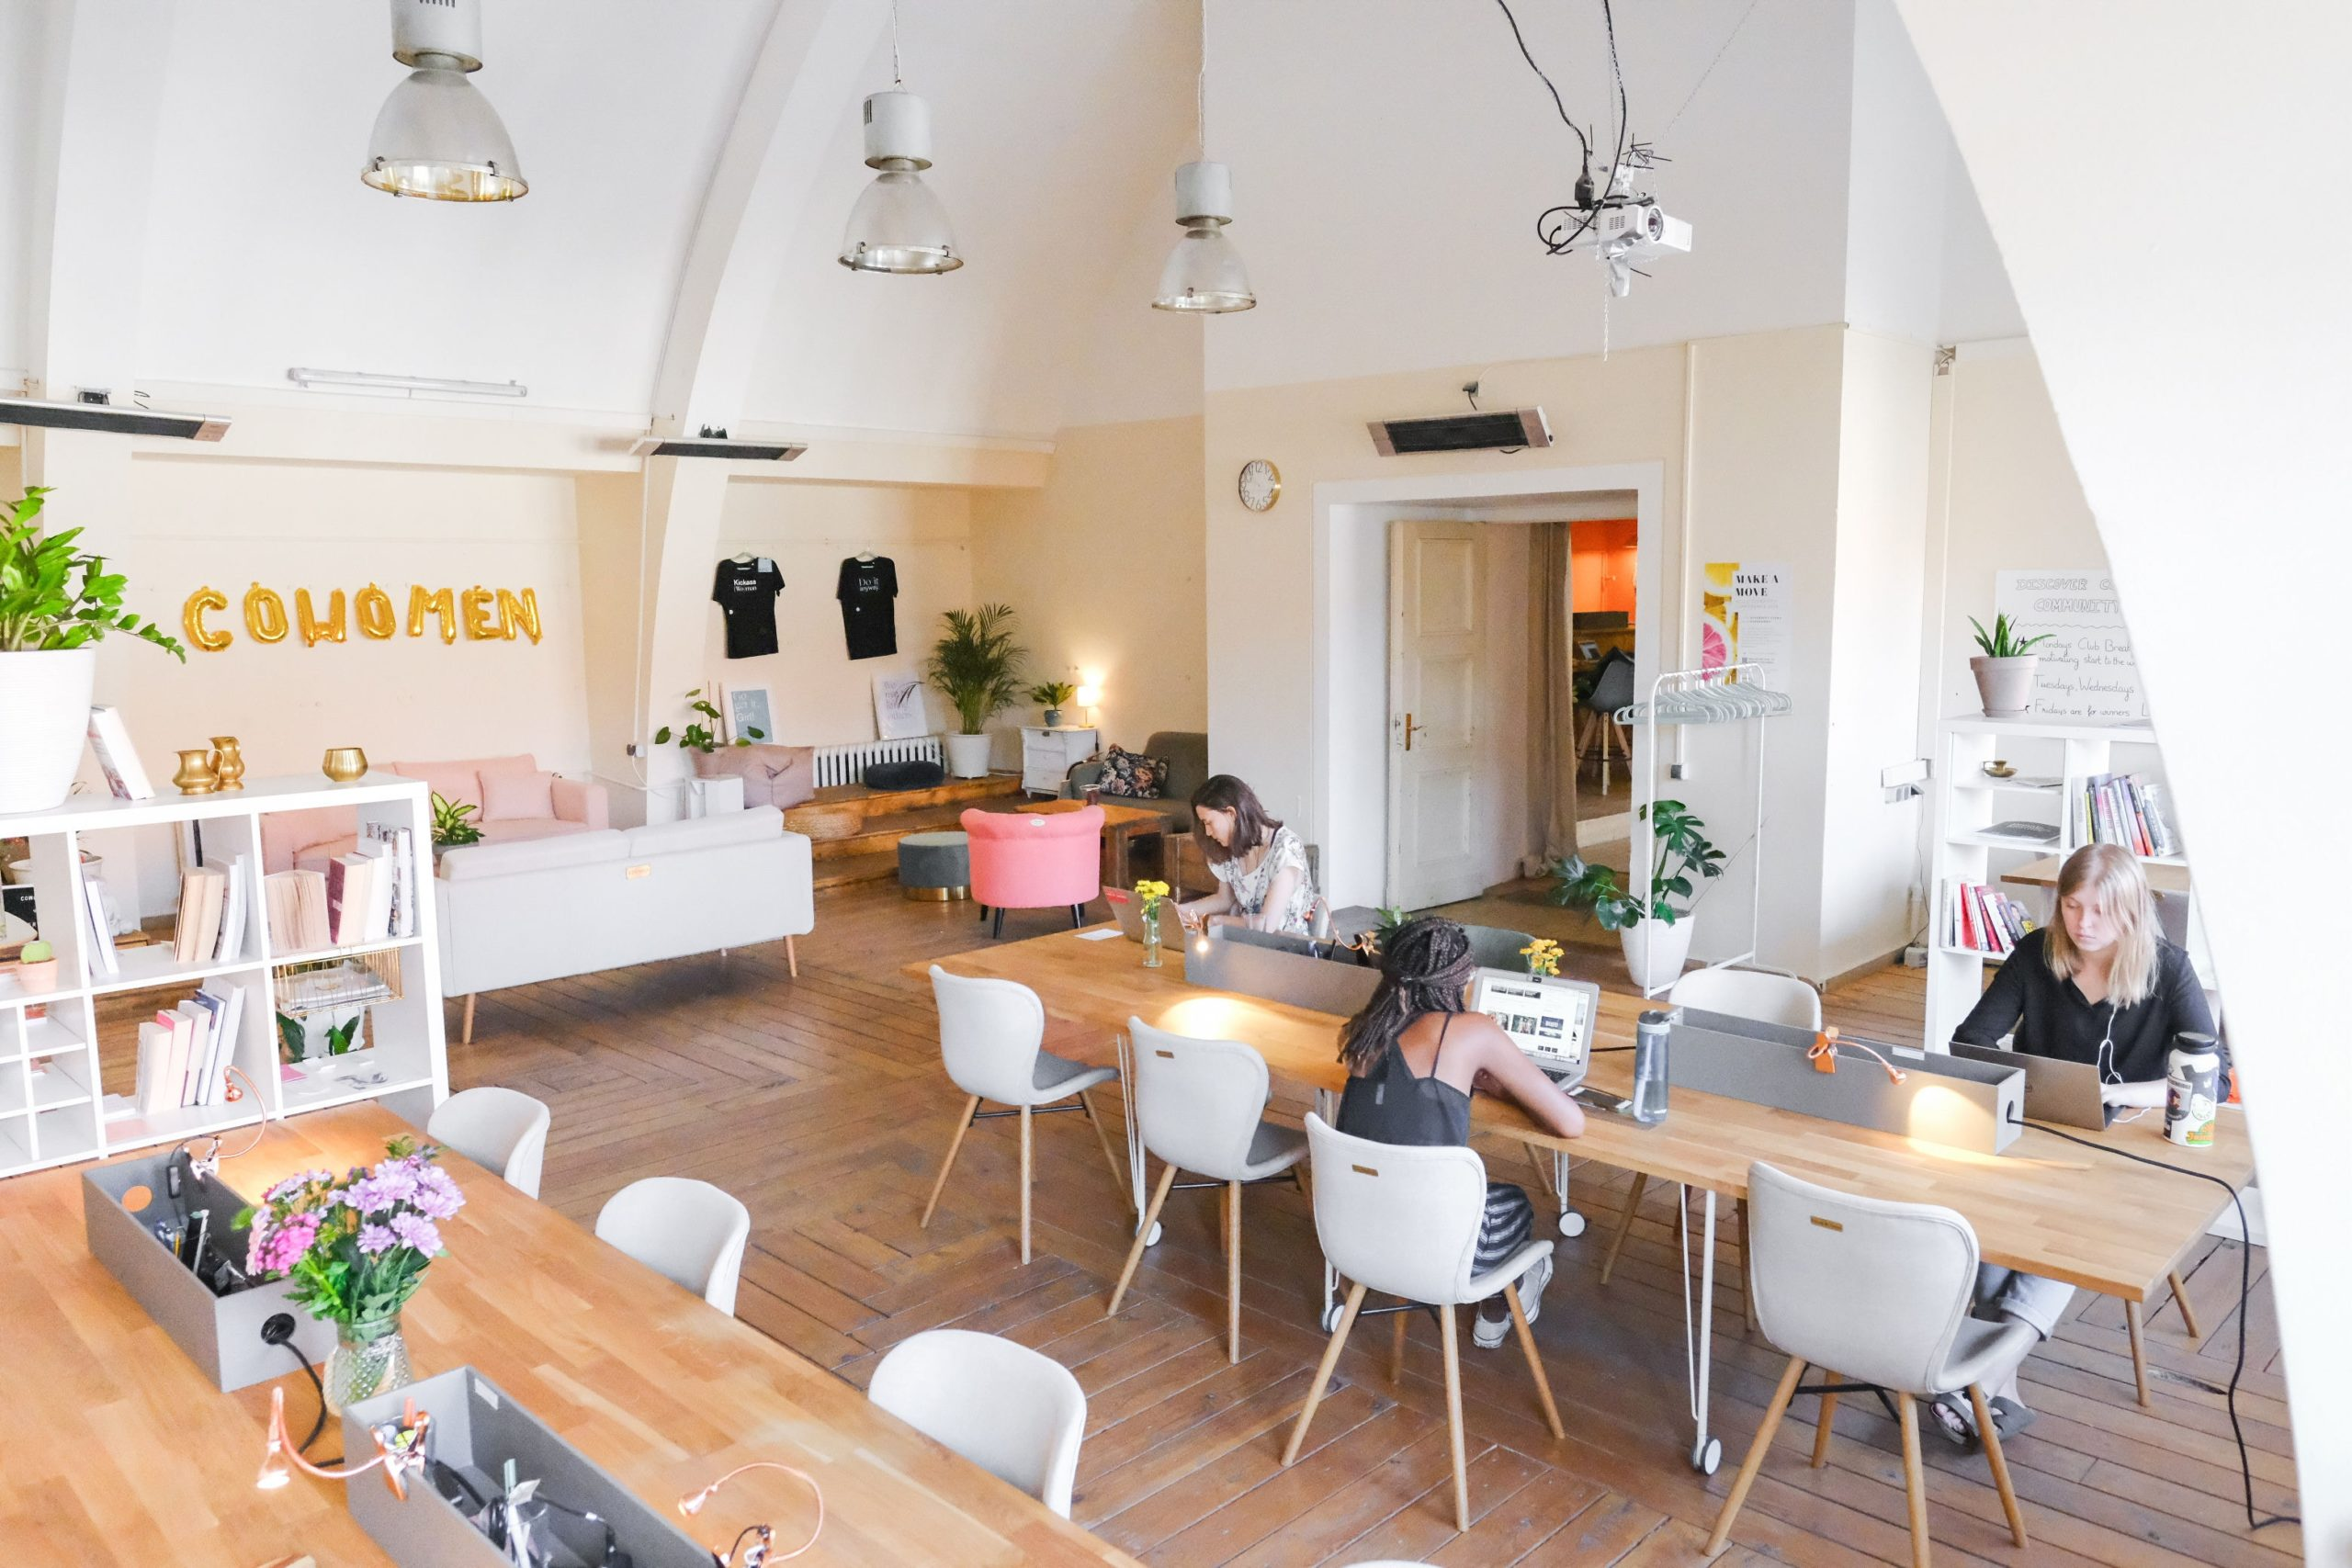 Coworking for women